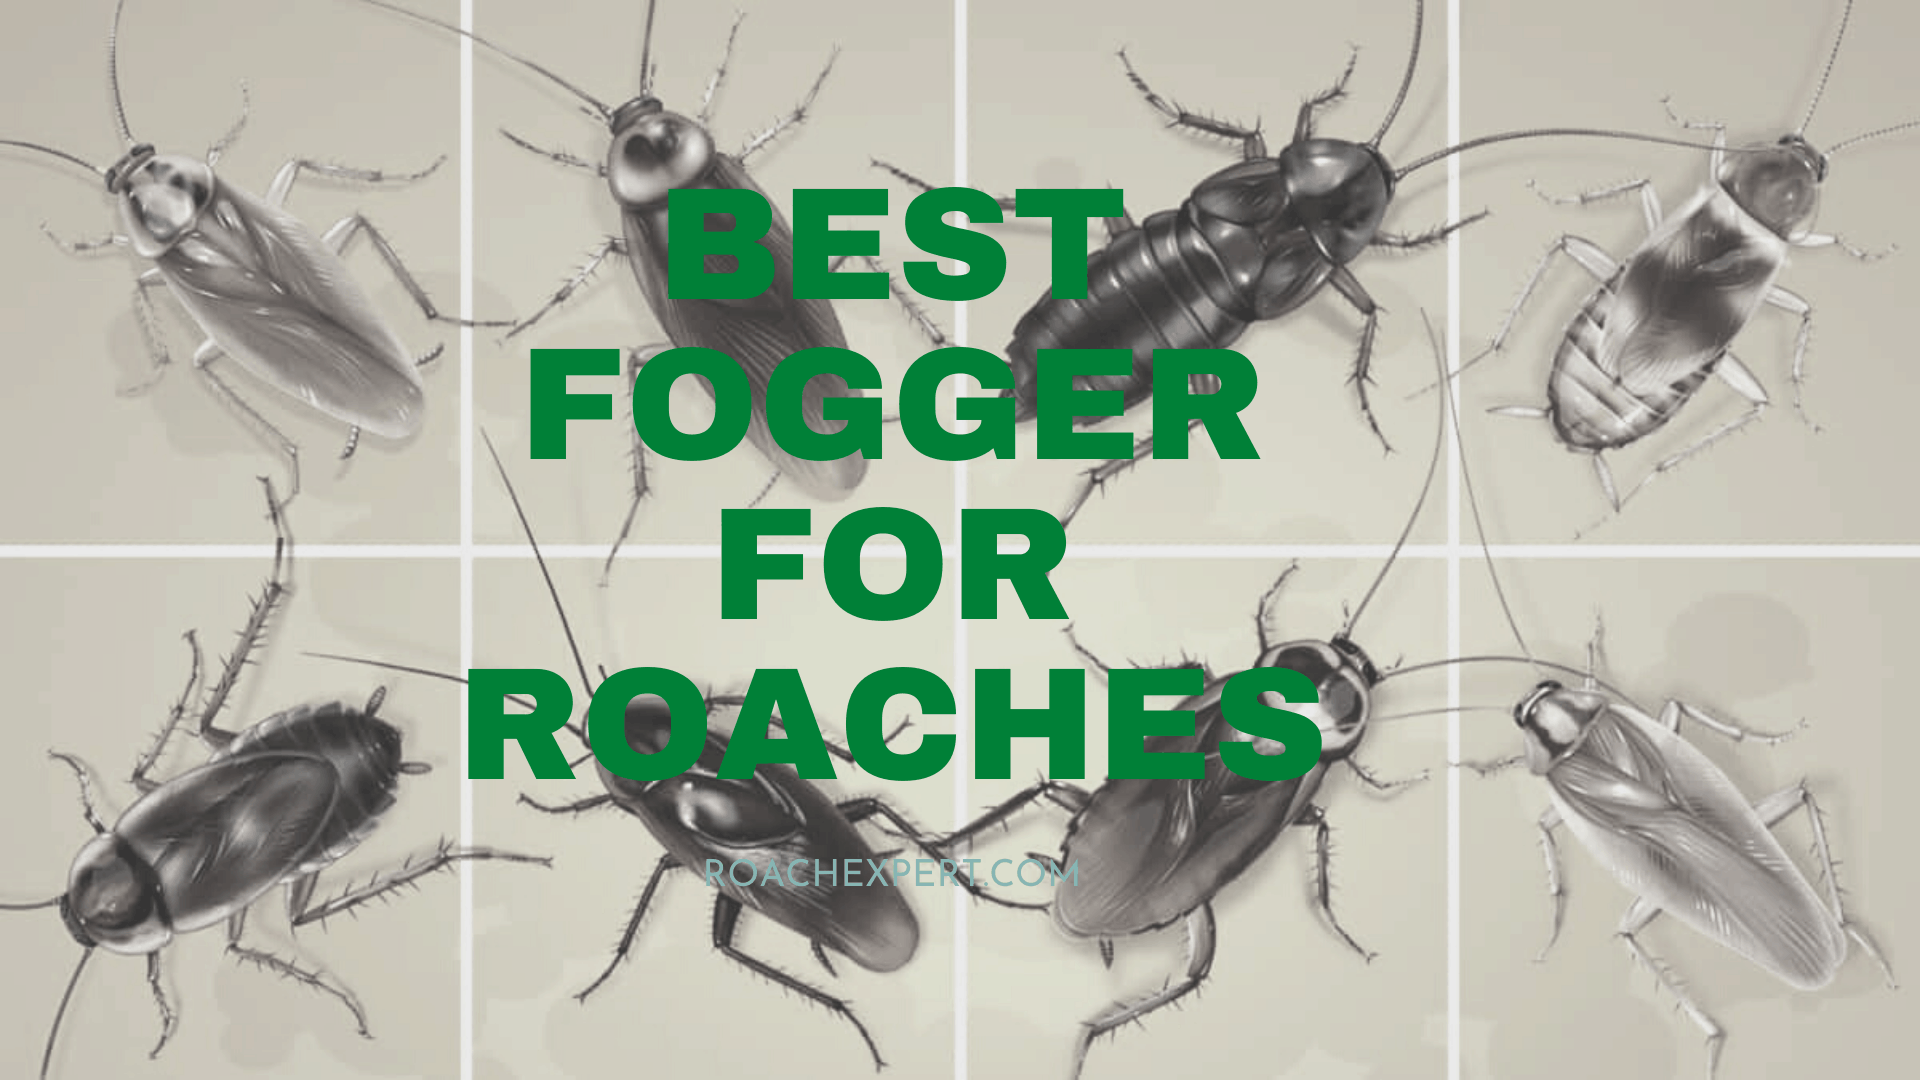 Best Fogger For Roaches